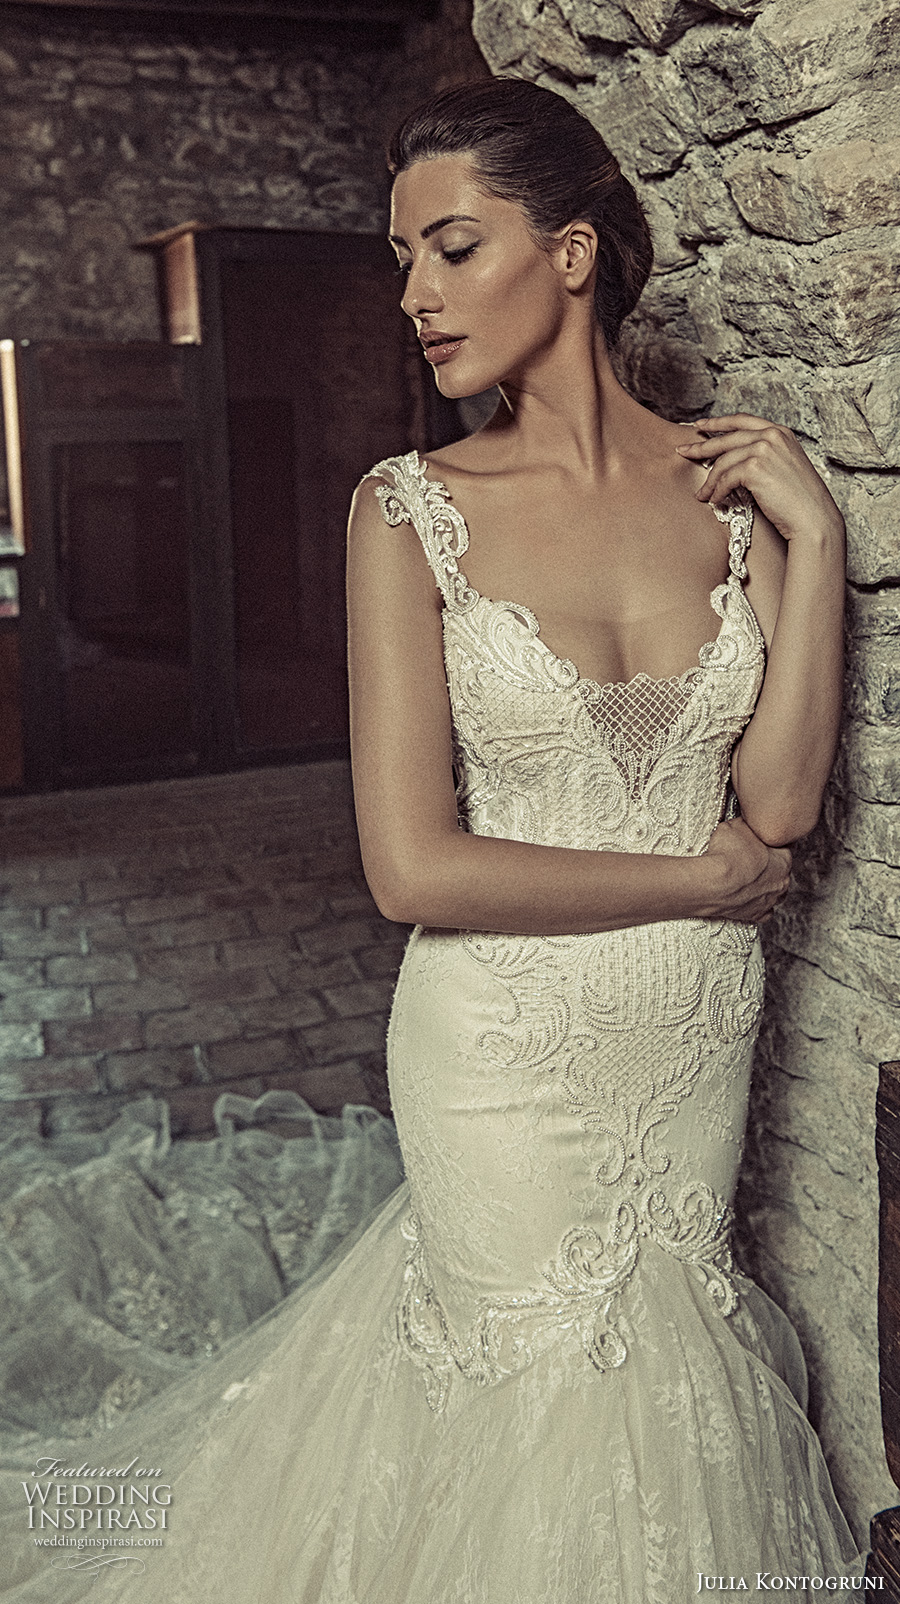 julia kontogruni 2017 bridal sleeveless strap deep v neck heavily embellished bodice glamorous elegant fit and flare wedding dress low back long train (9) zv